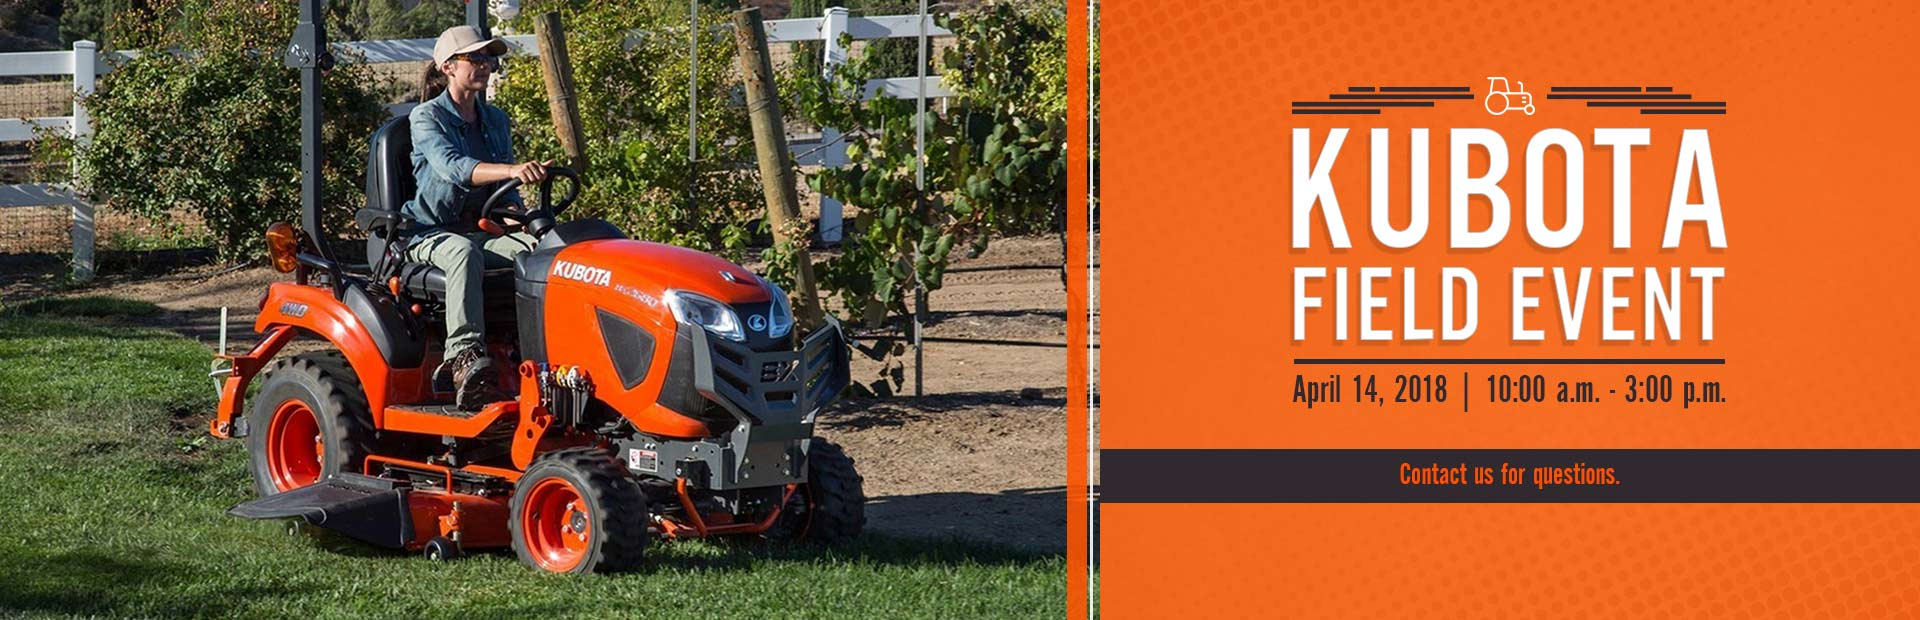 Join us April 14 for our Kubota Field Event! Contact us for questions.